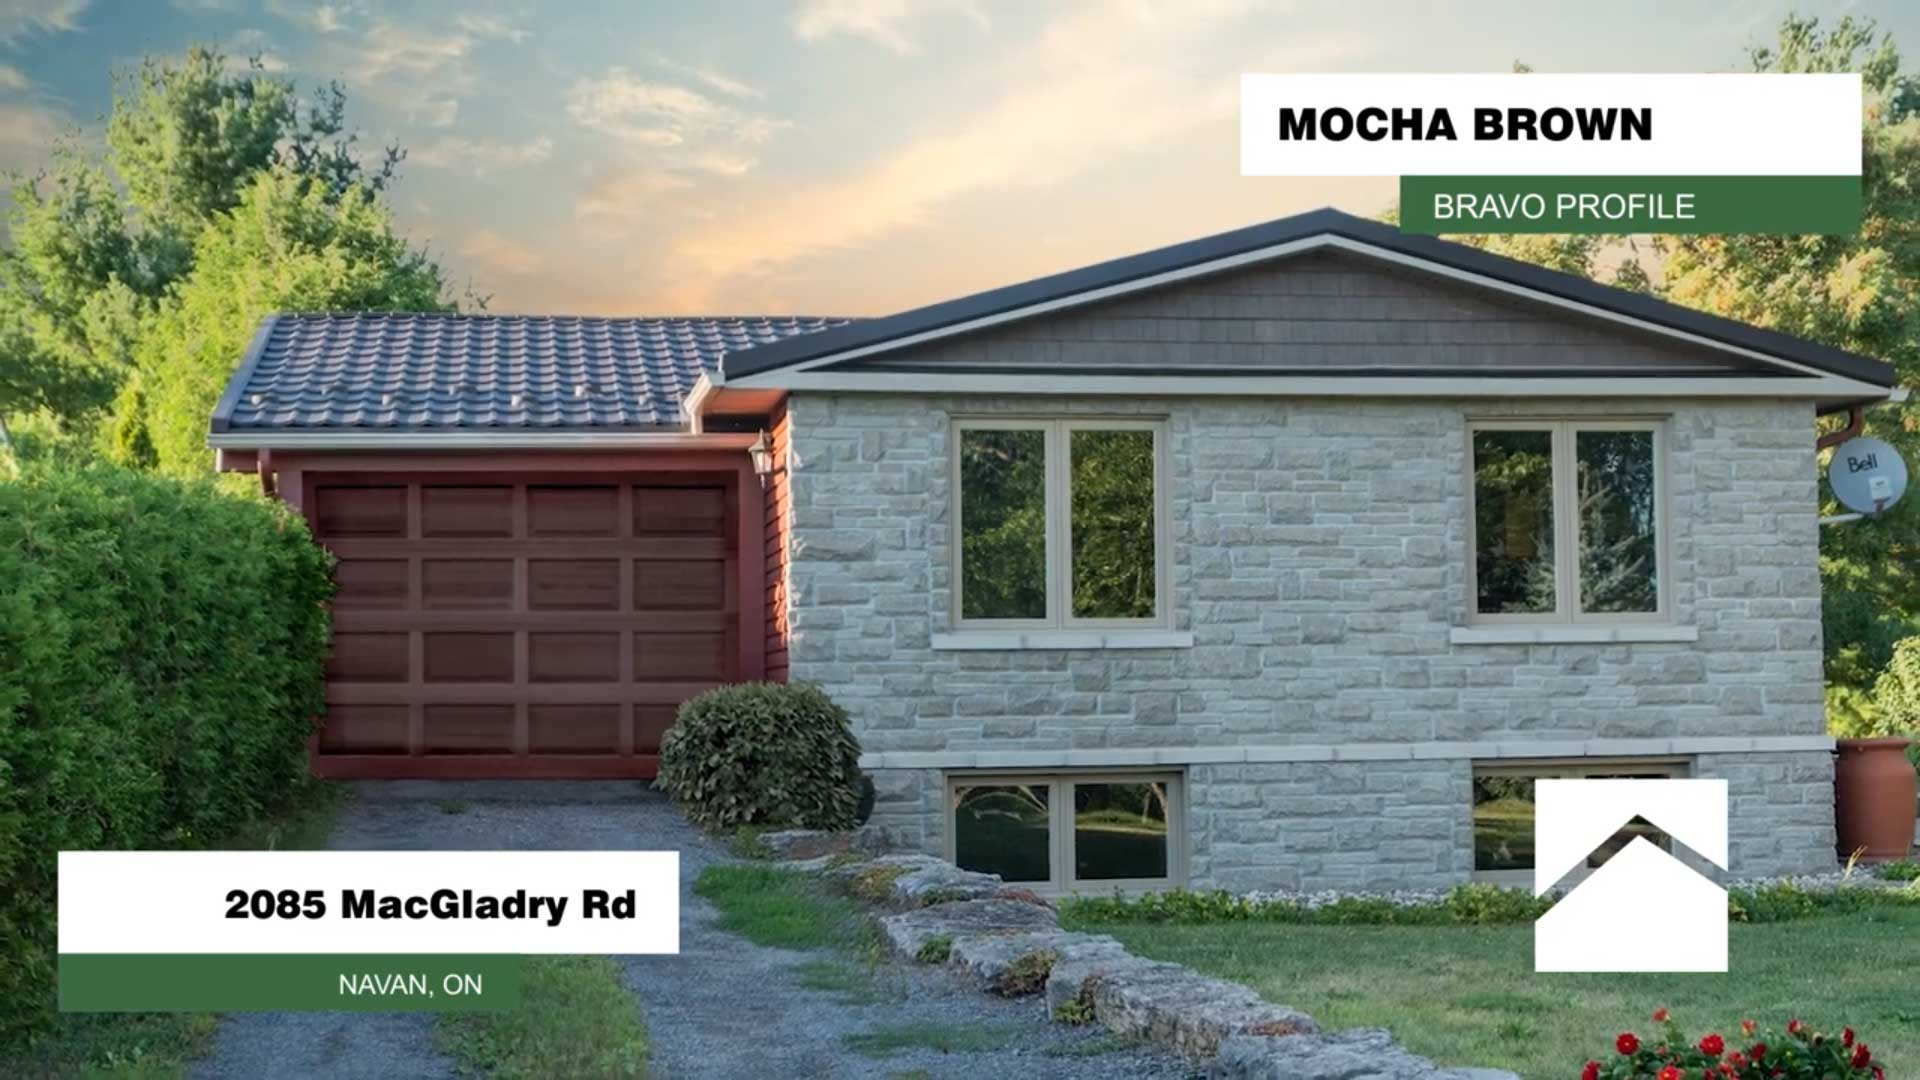 2085 Macgladry Road Navan Ontario BRAVO Profile Mocha Brown Colour